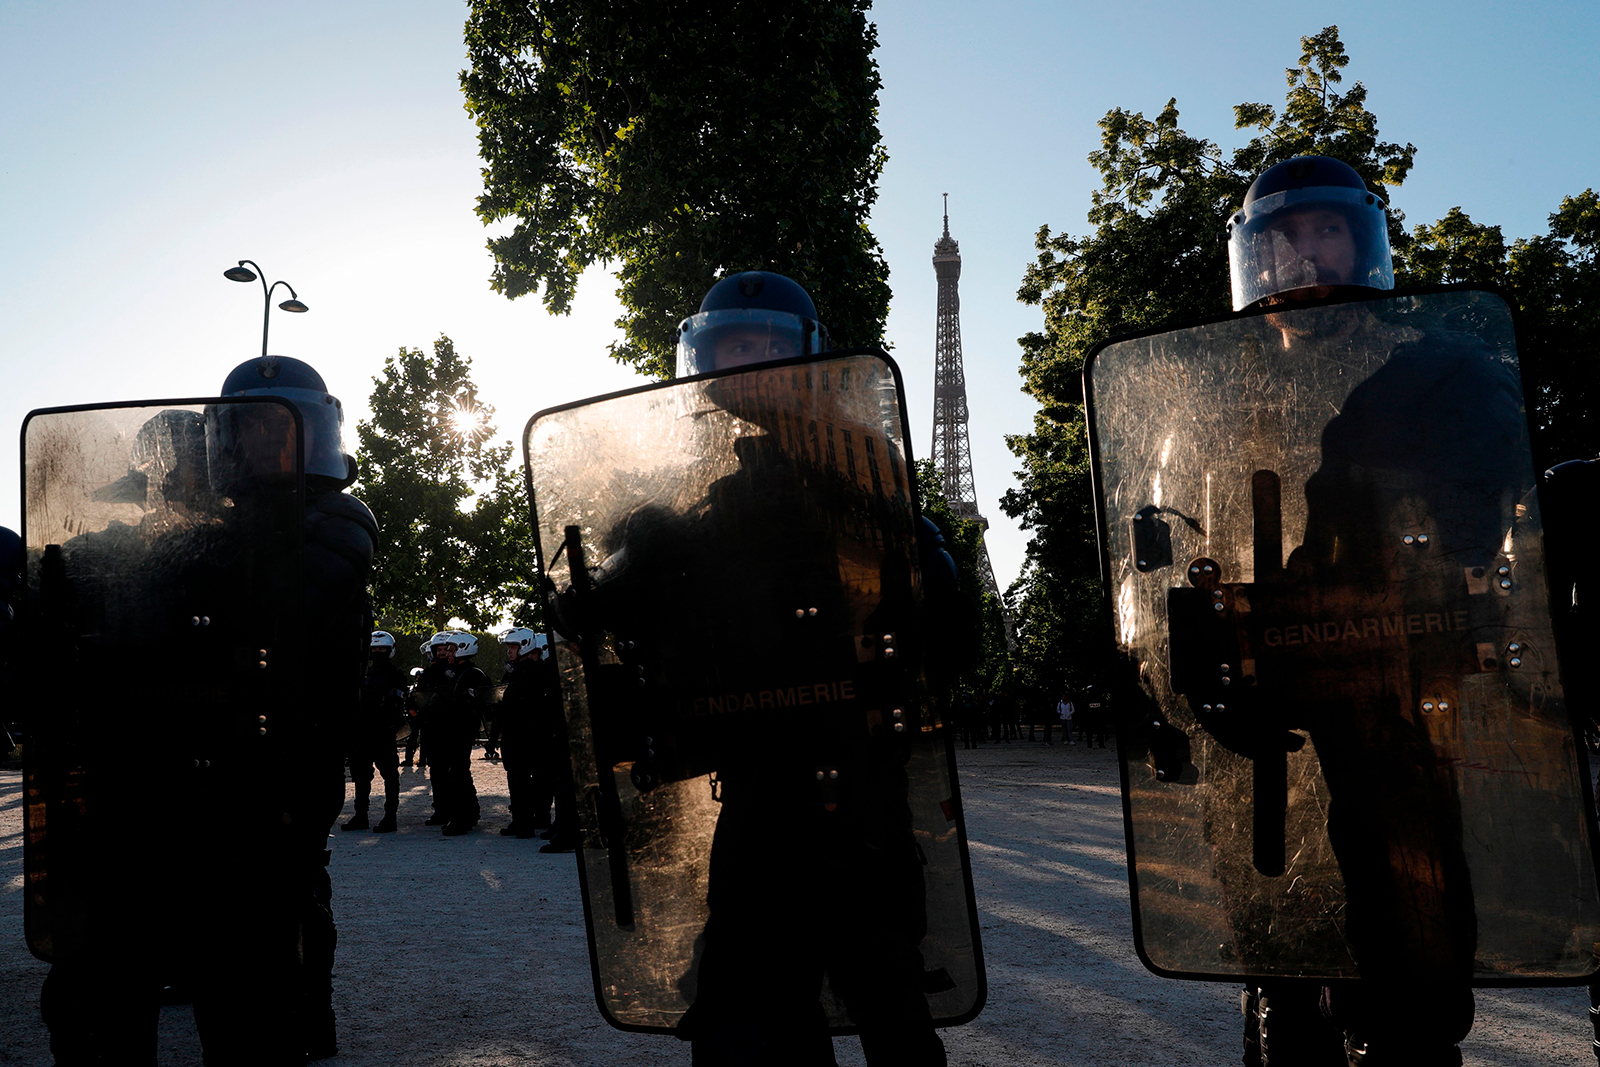 Riot policemen hold their shields with the Eiffel Tower in background during a protest at the Champ de Mars, in Paris on June 6.